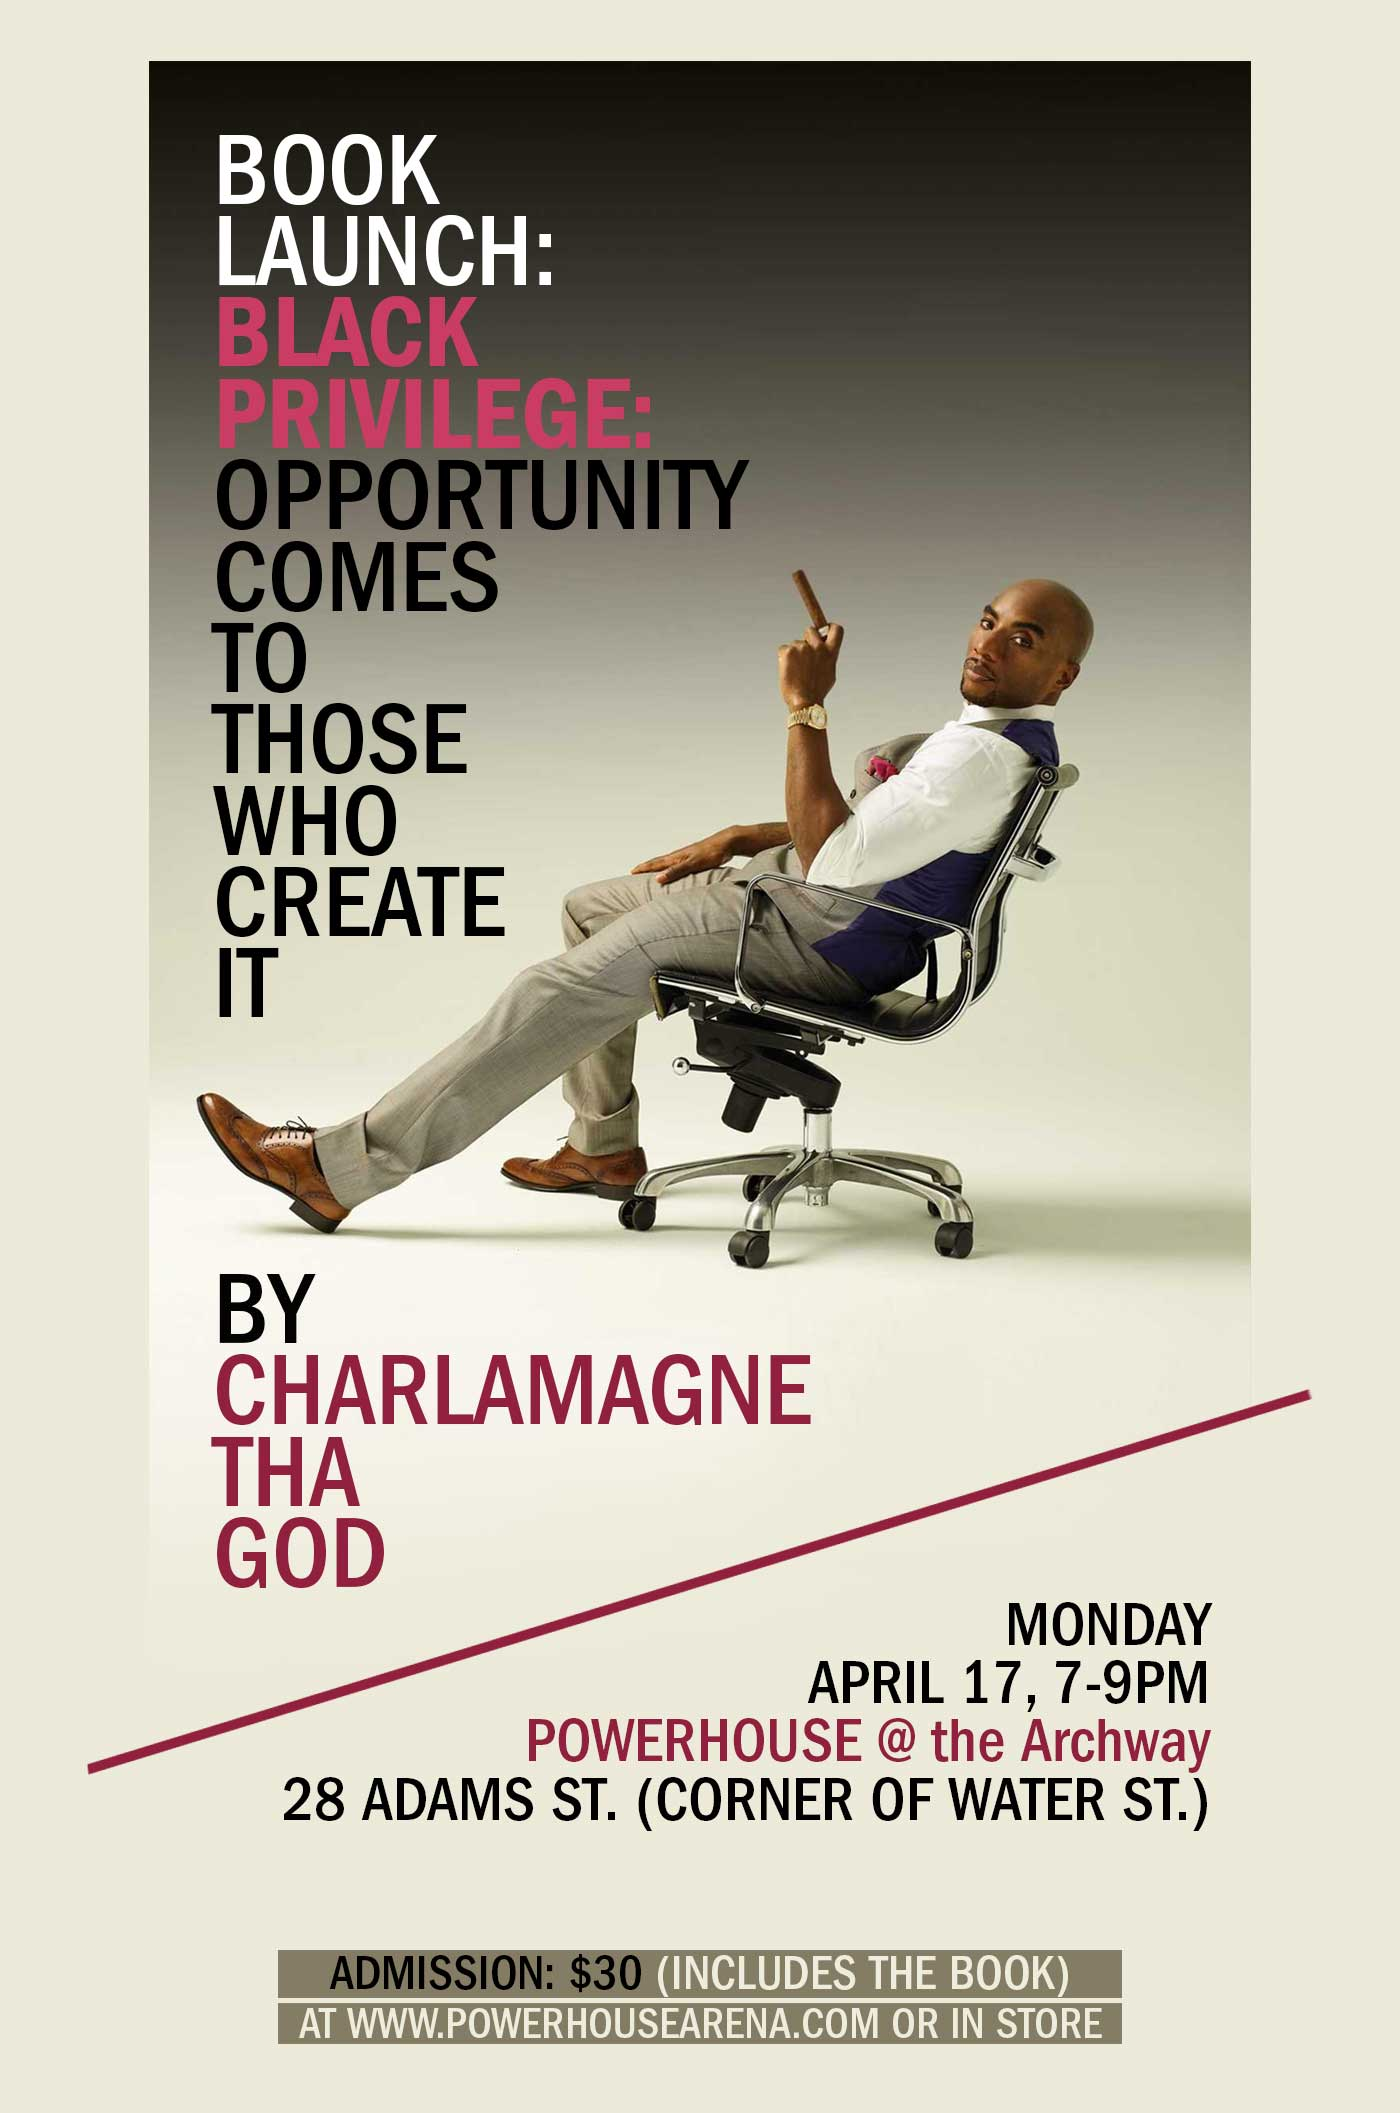 Book Launch: Black Privilege: Opportunity Comes to Those Who Create It by Charlamagne  Tha